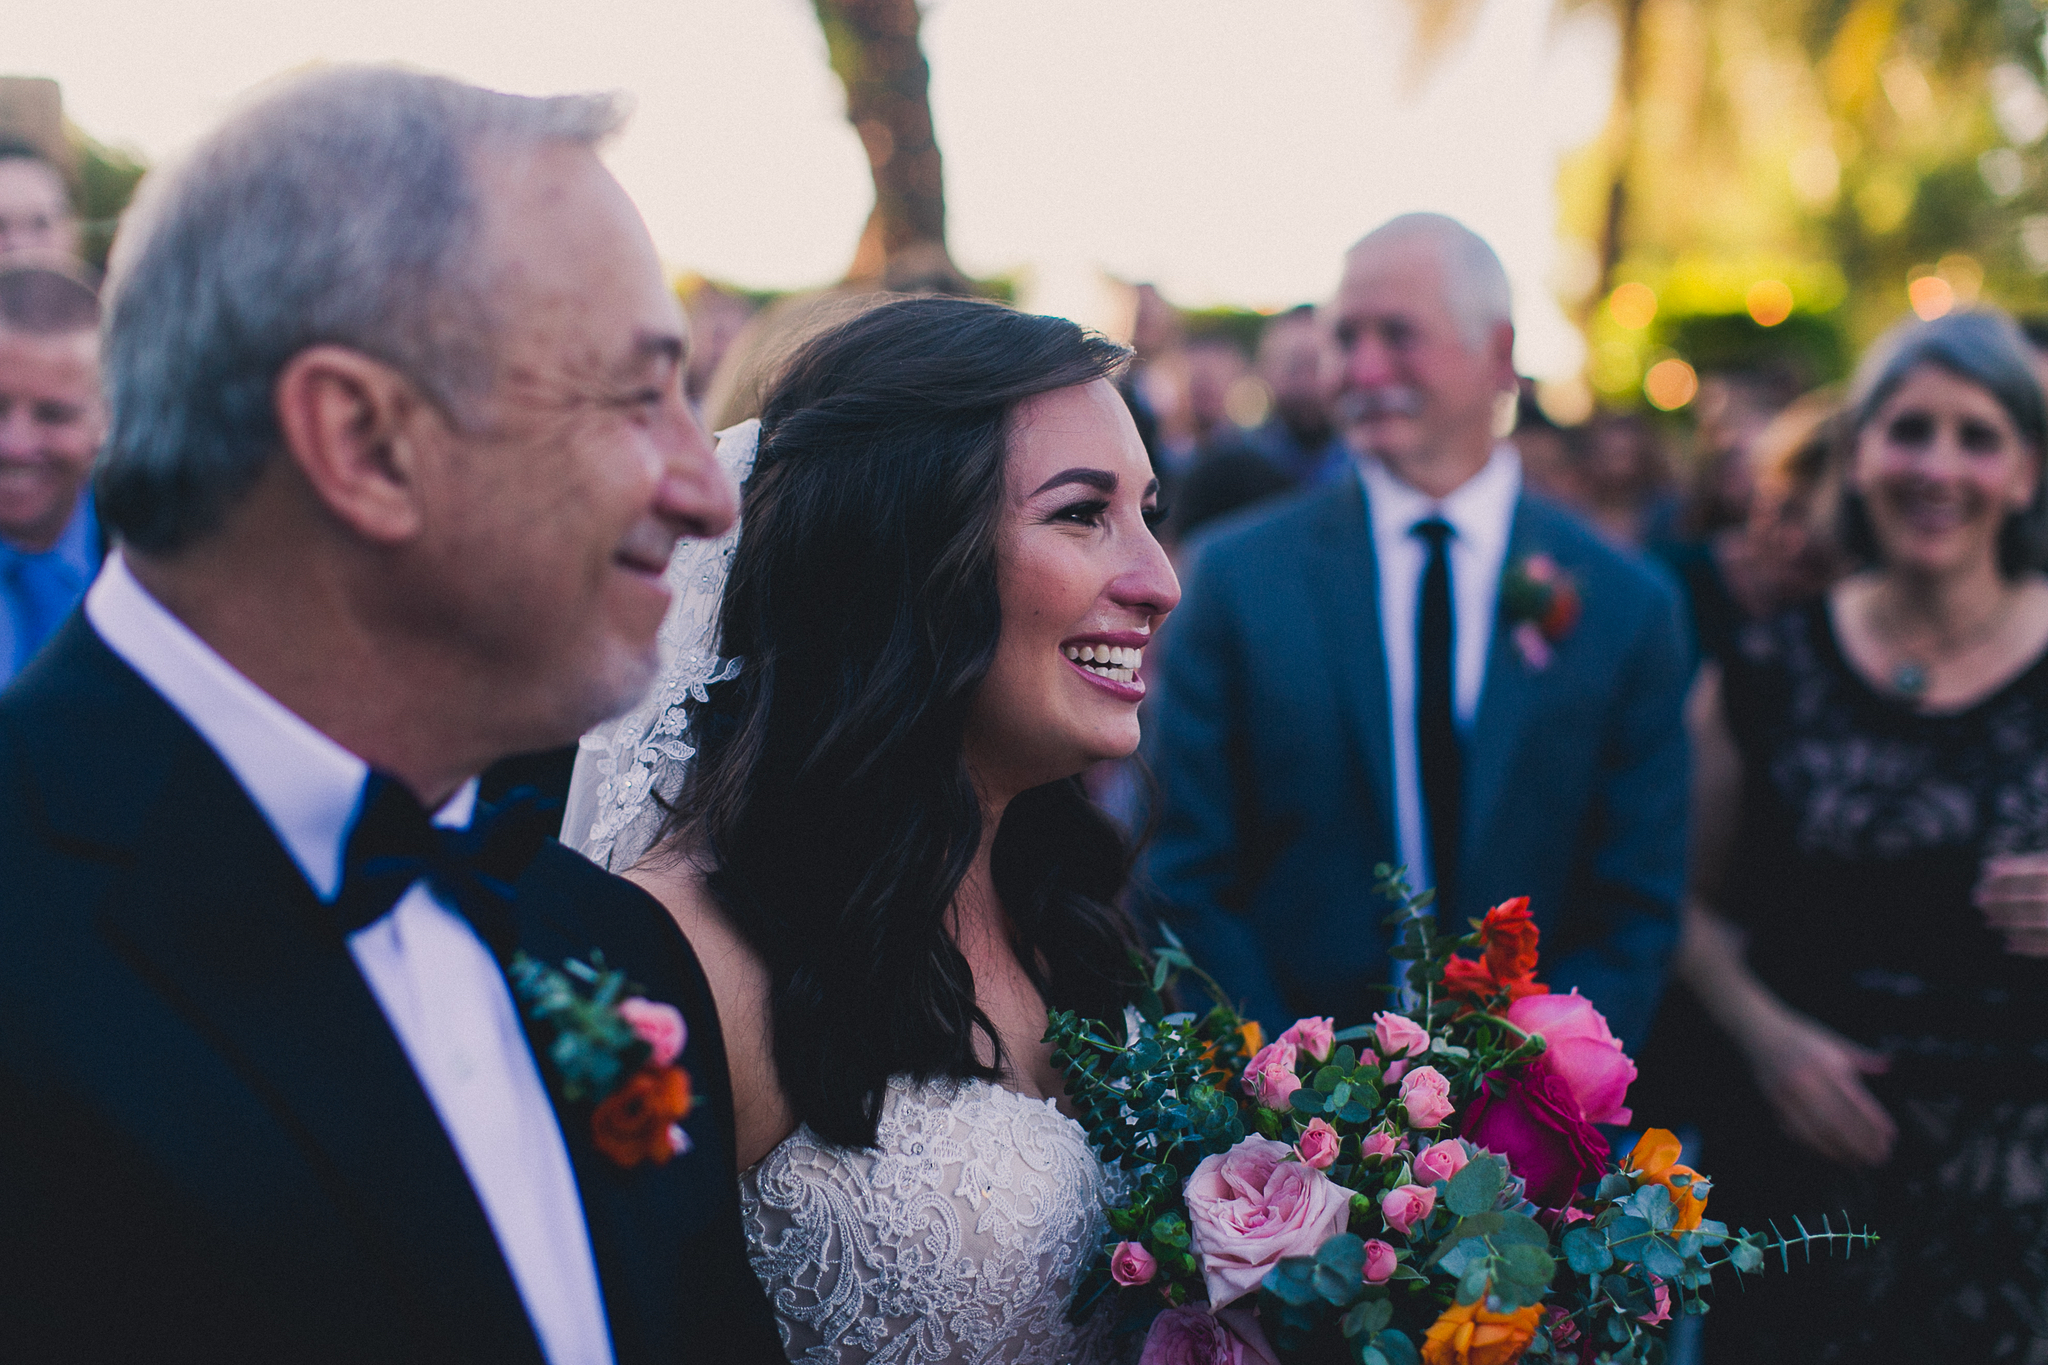 Colorful Springtime Wedding at Wrigley Mansion - Bride and her dad walking down the aisle